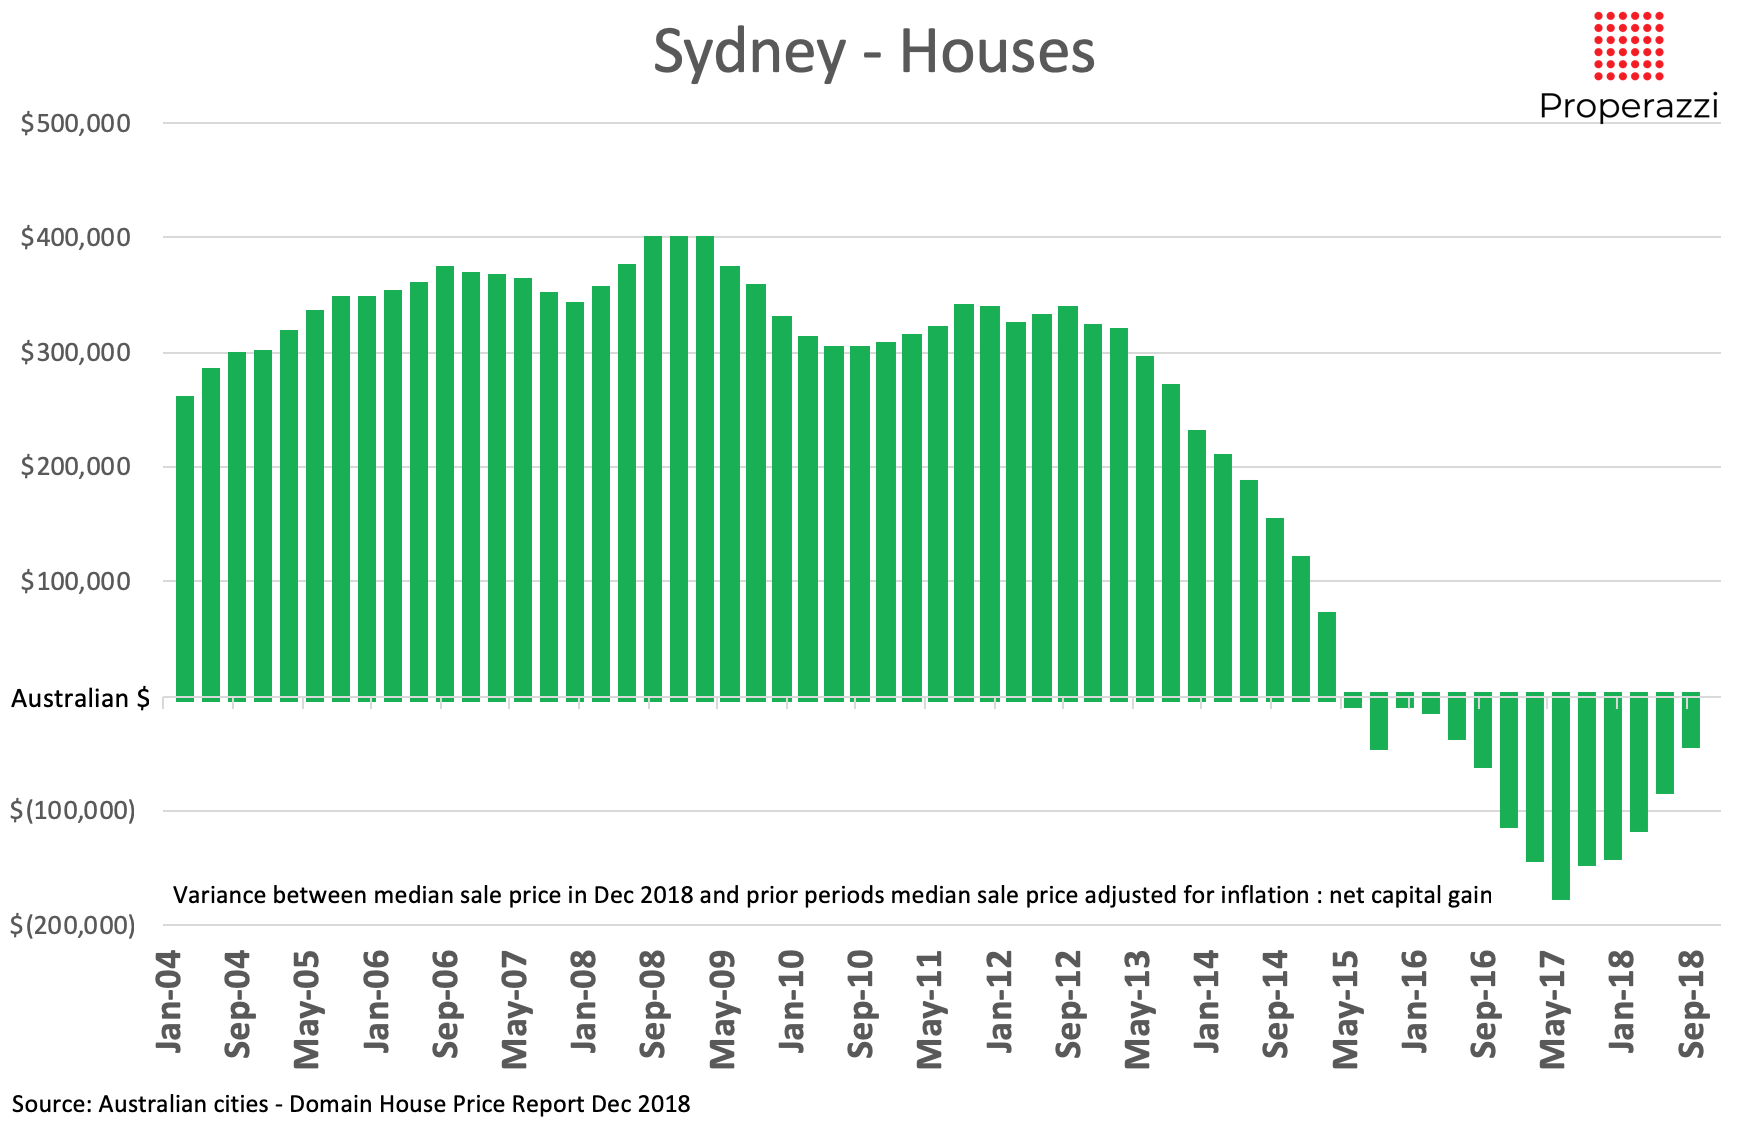 Net gain in house prices in Sydney based on Dec 2018 prices